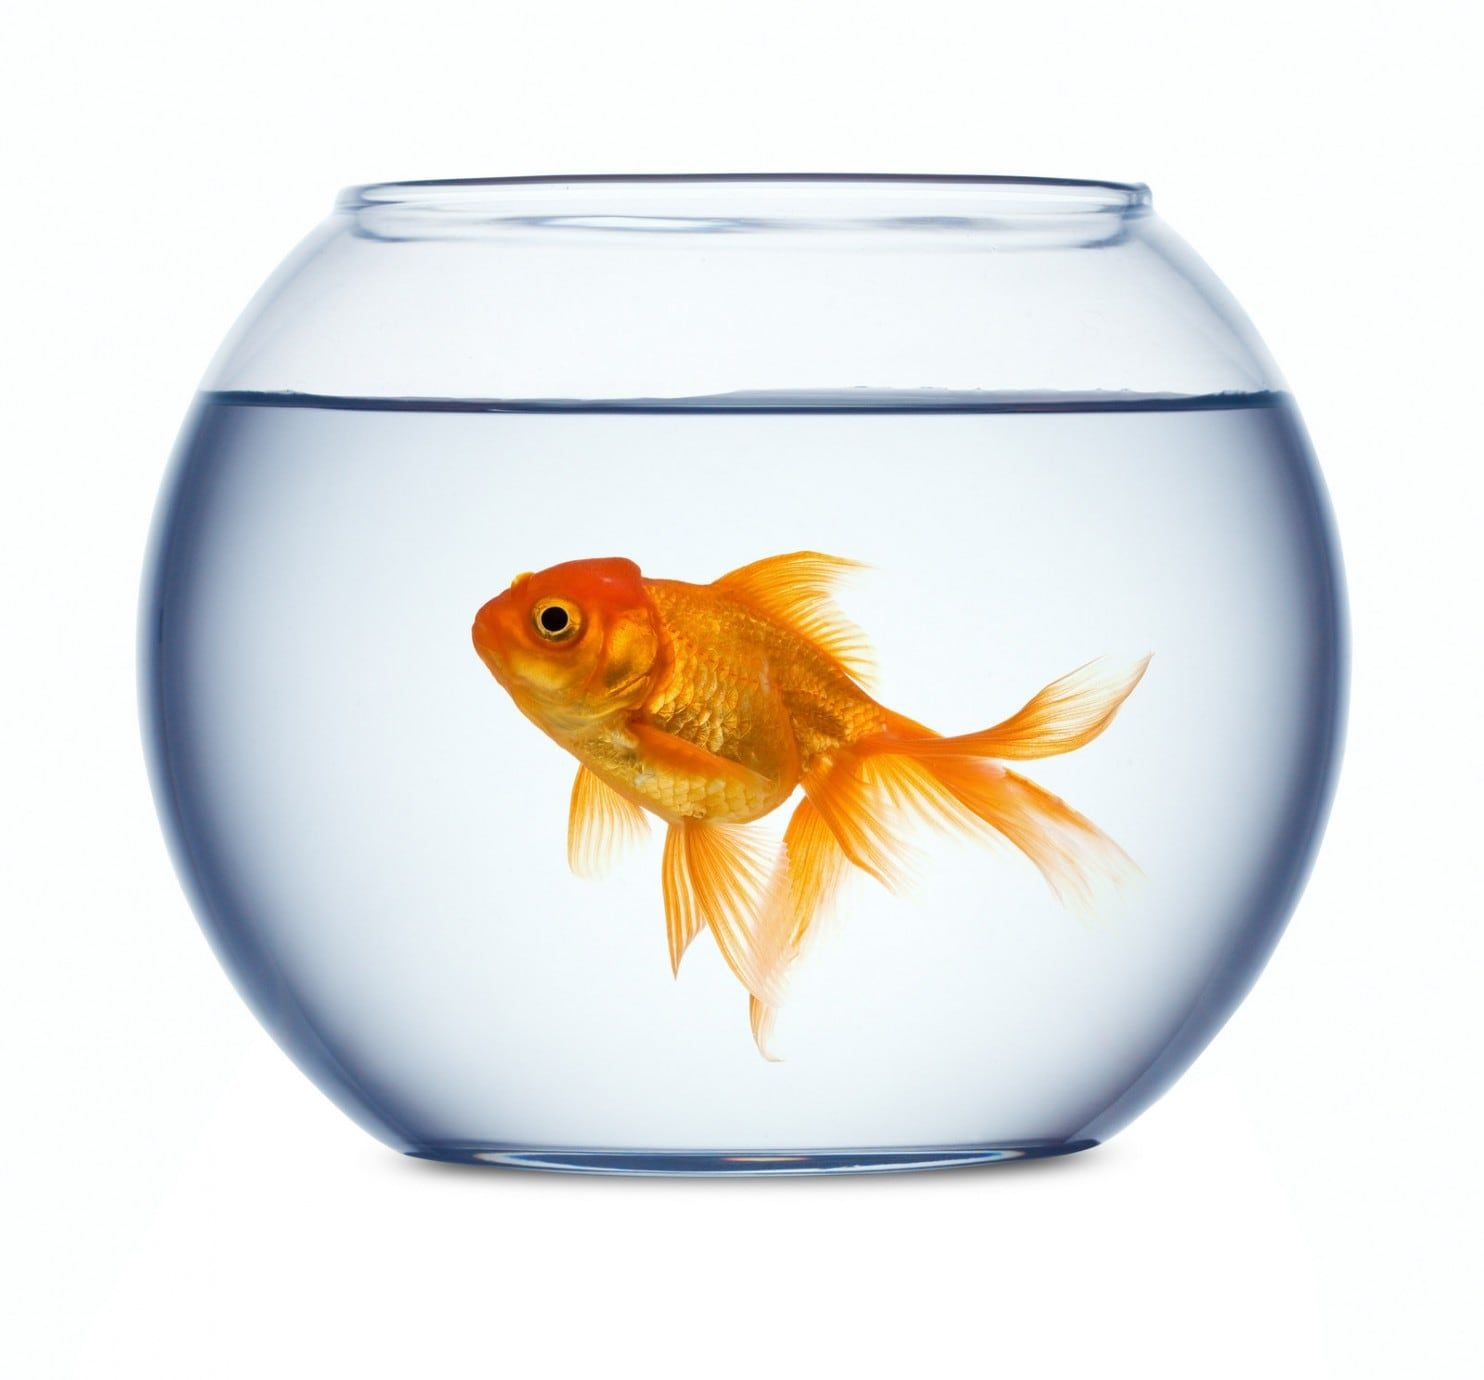 Perspective Breeding Ponds In College Park Md Once Kept The U S Awash In Goldfish Goldfish Glass Fish Bowl Colorful Fish